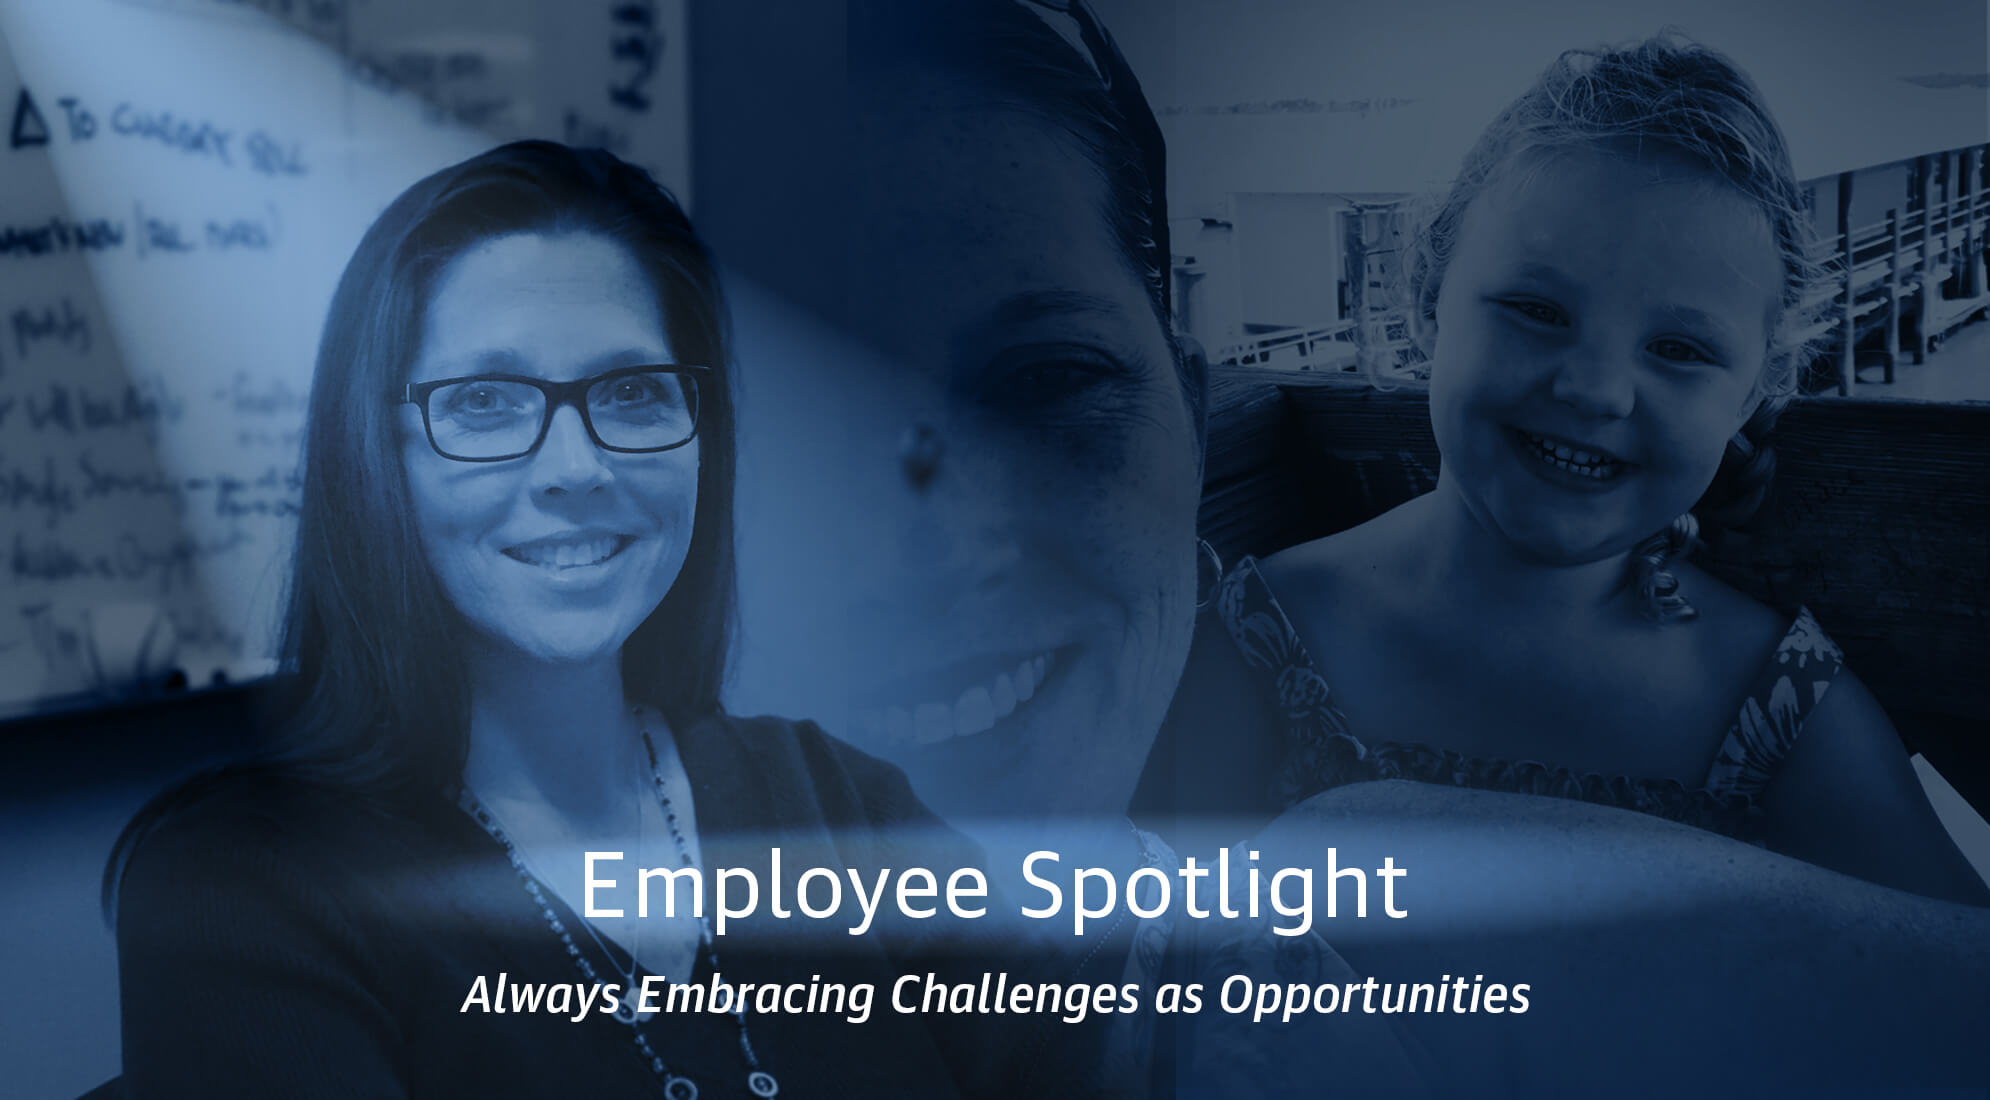 Employee Spotlight: Continuous Improvement is Her Way of Life